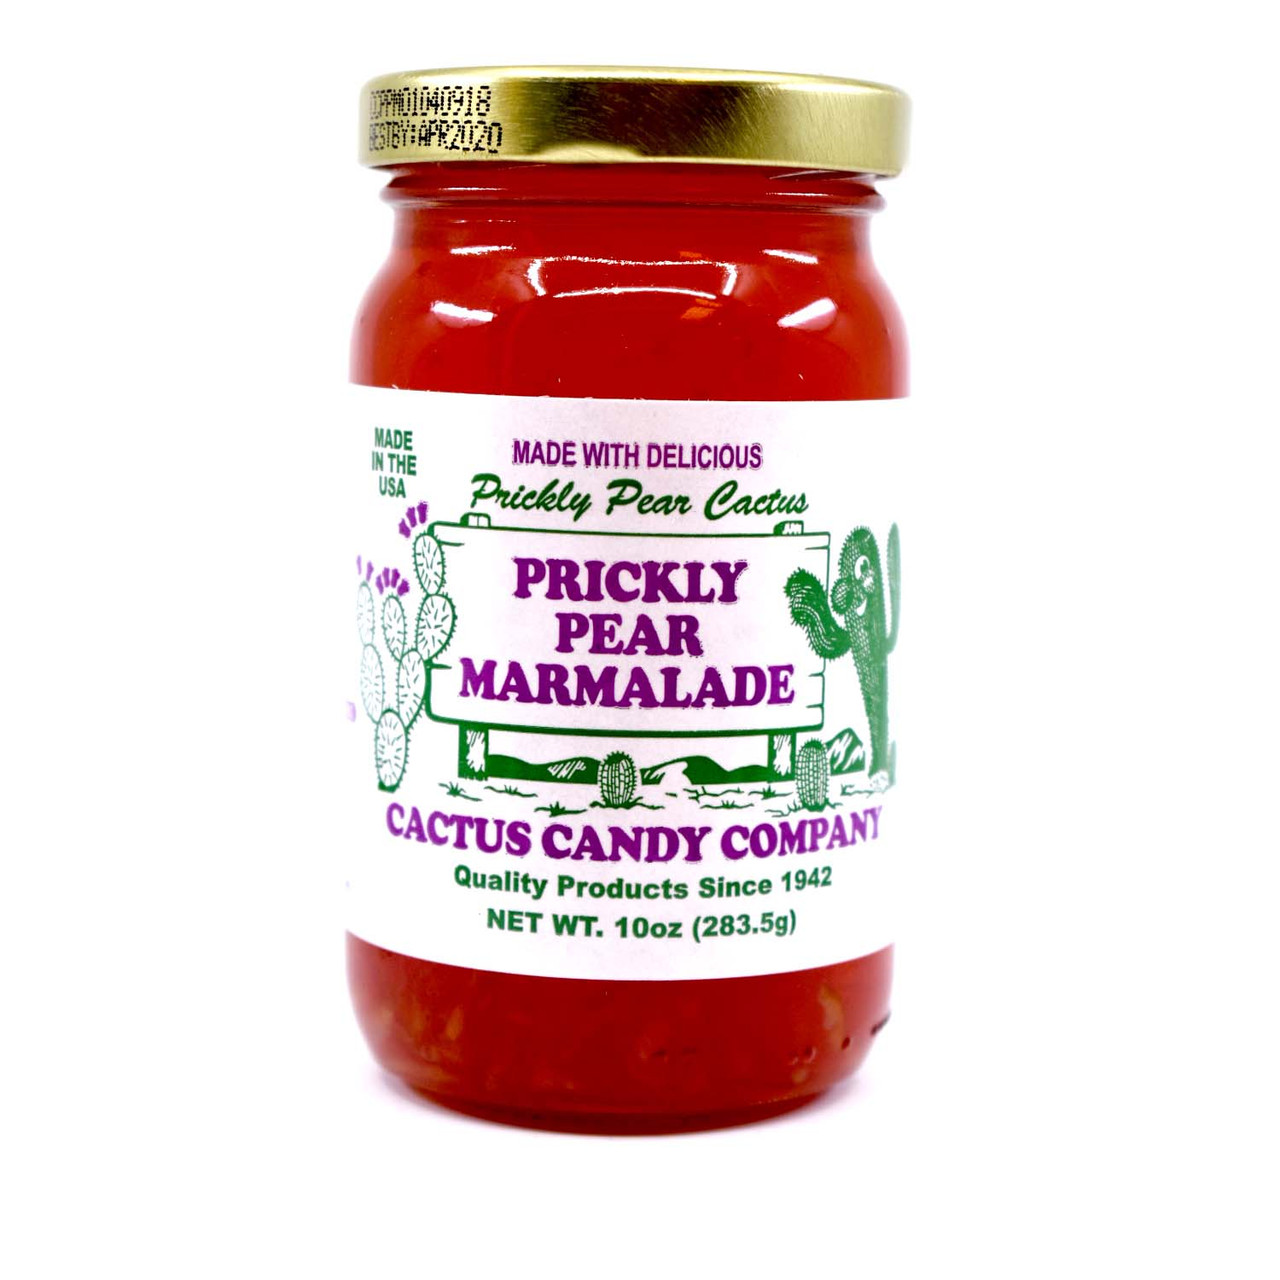 Prickly Pear Maramalade 10oz Glass Jar